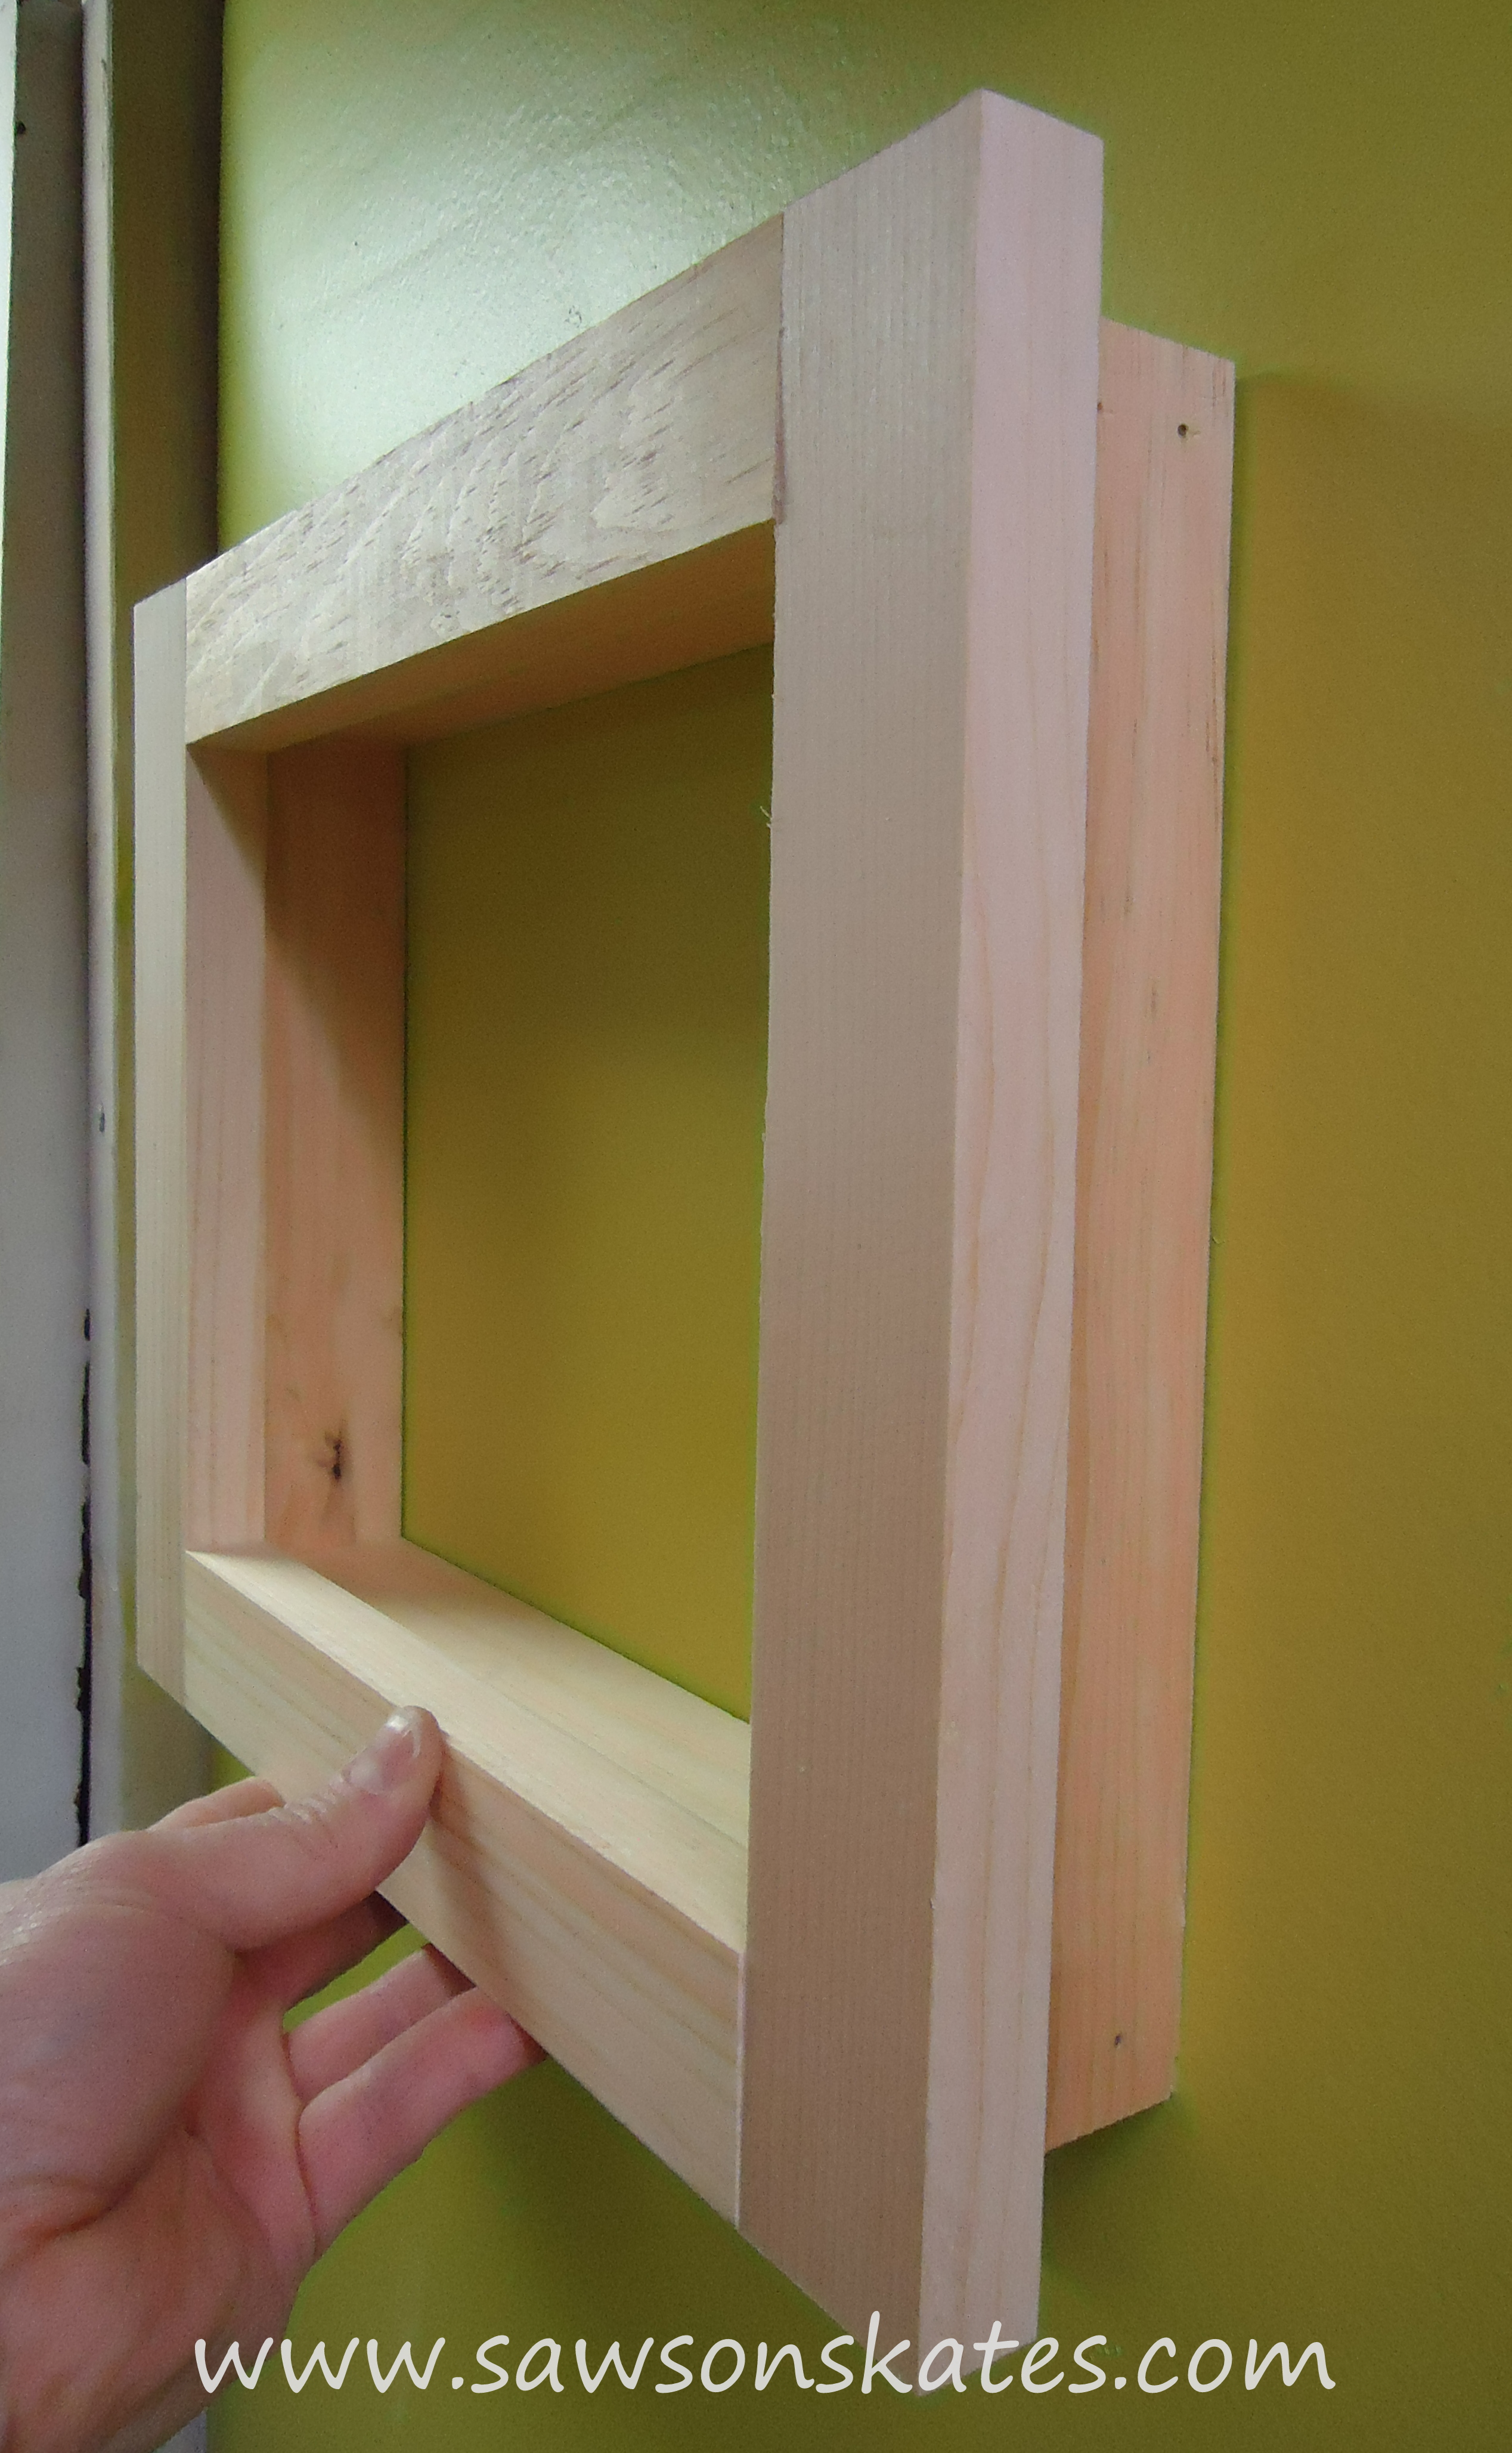 how to make a no miter cut picture frame free plans saws on skates. Black Bedroom Furniture Sets. Home Design Ideas